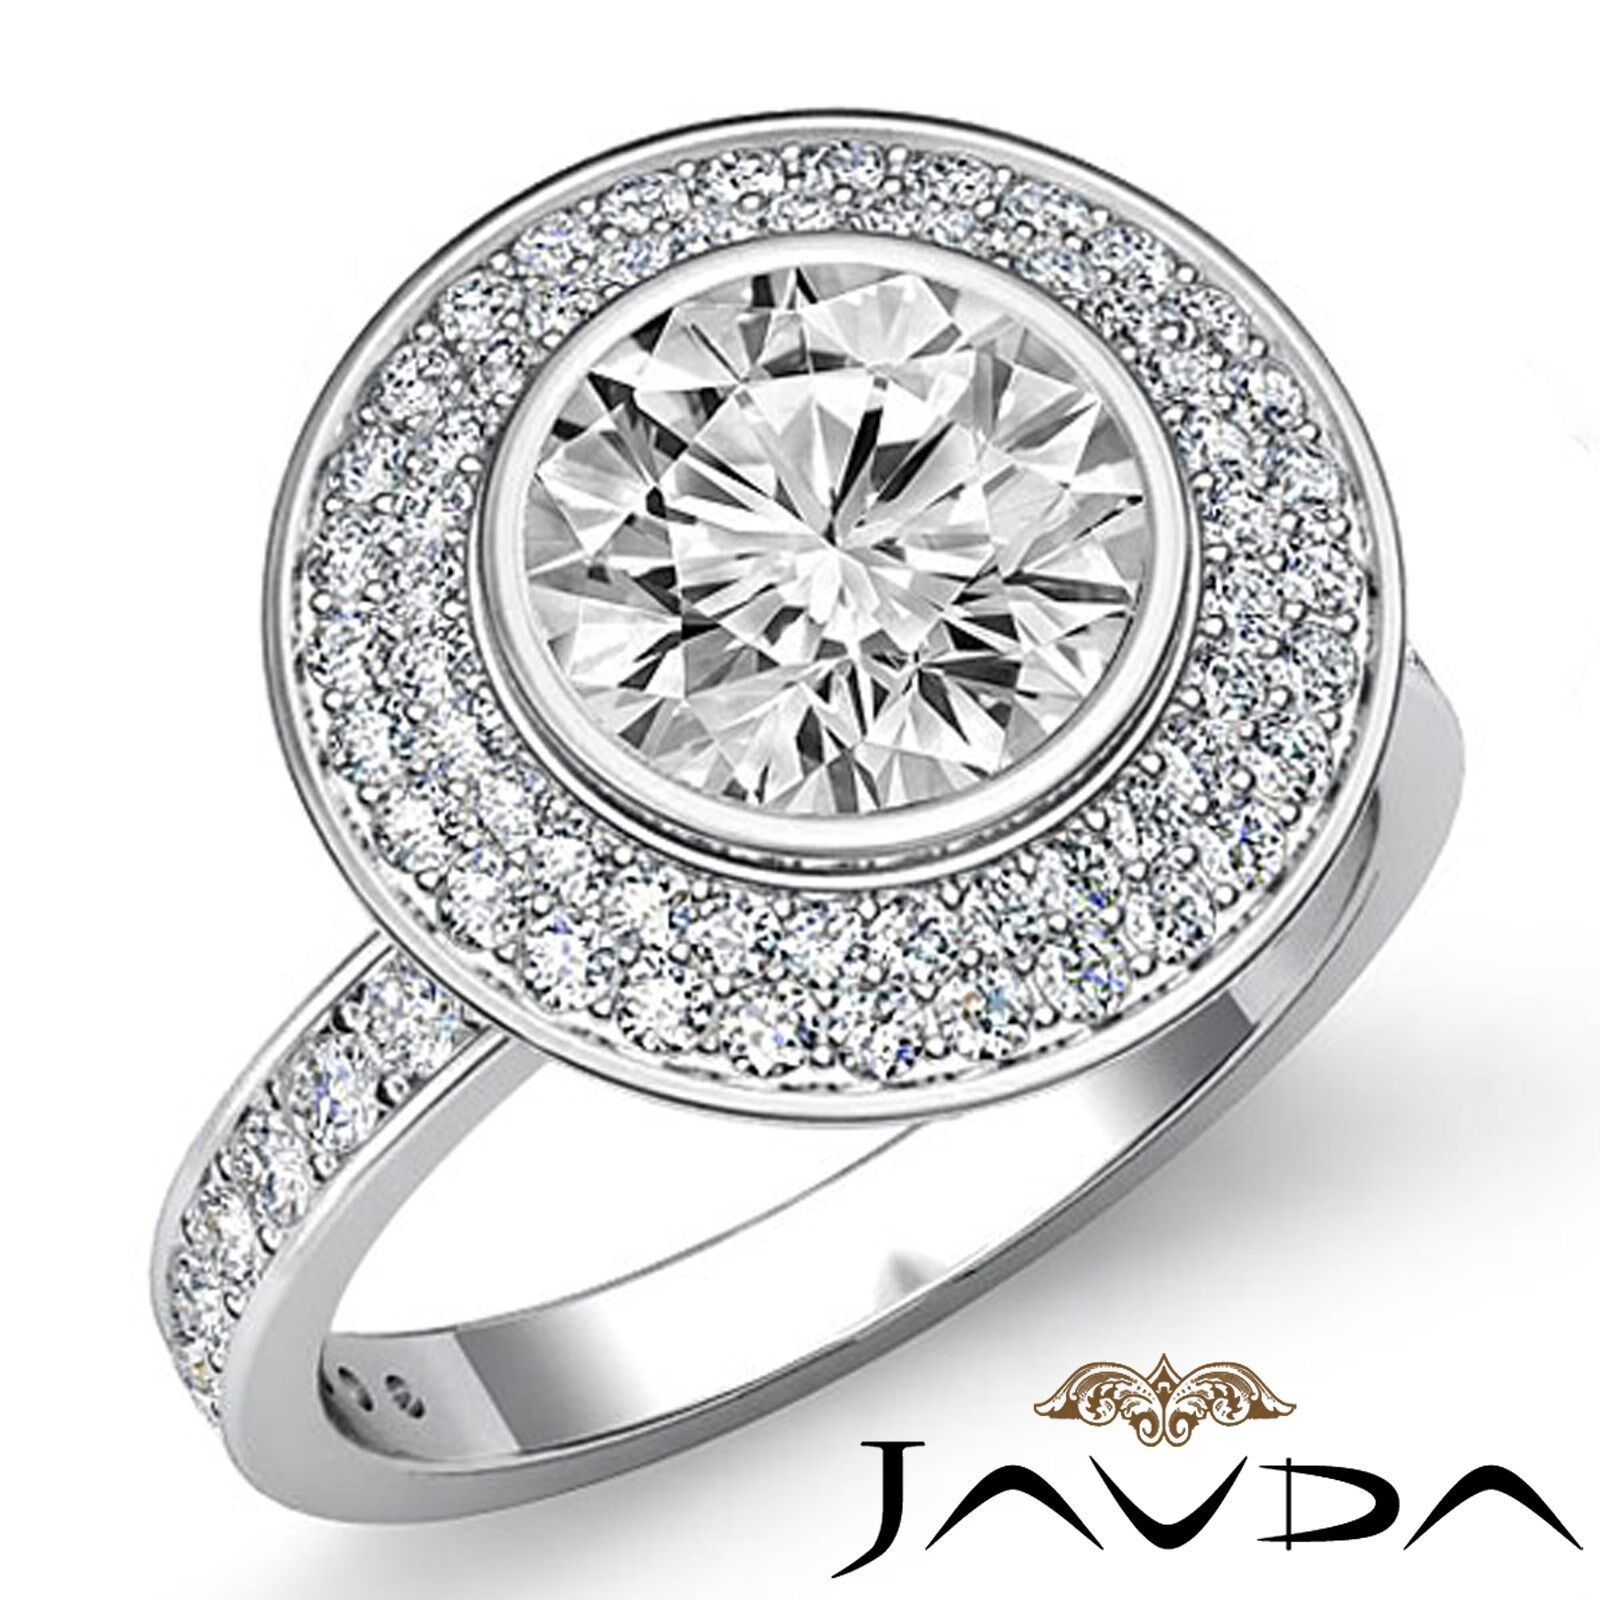 Double Halo Micro Pave Bezel Set Round Diamond Engagement Ring GIA F VS2 2.25 Ct